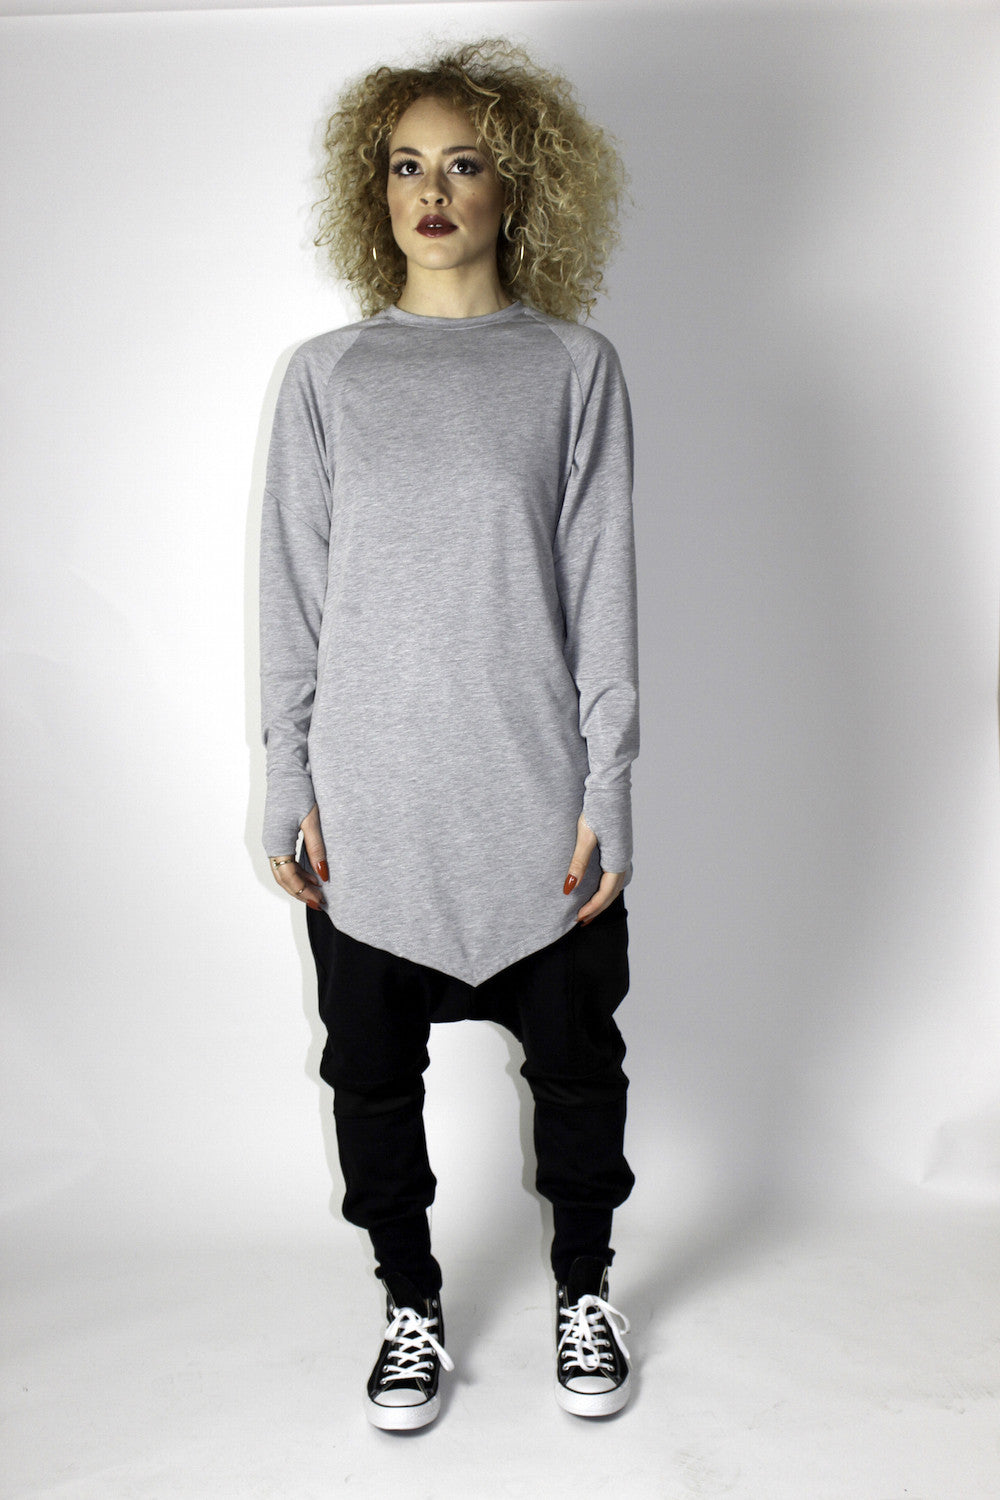 DREWSKI BY HEENY - Dagger Longsleeve Tee - Marl Grey - •ÈÀOversized longsleeve t-shirt with angled front, straight seemed back and raglan cut sleeve